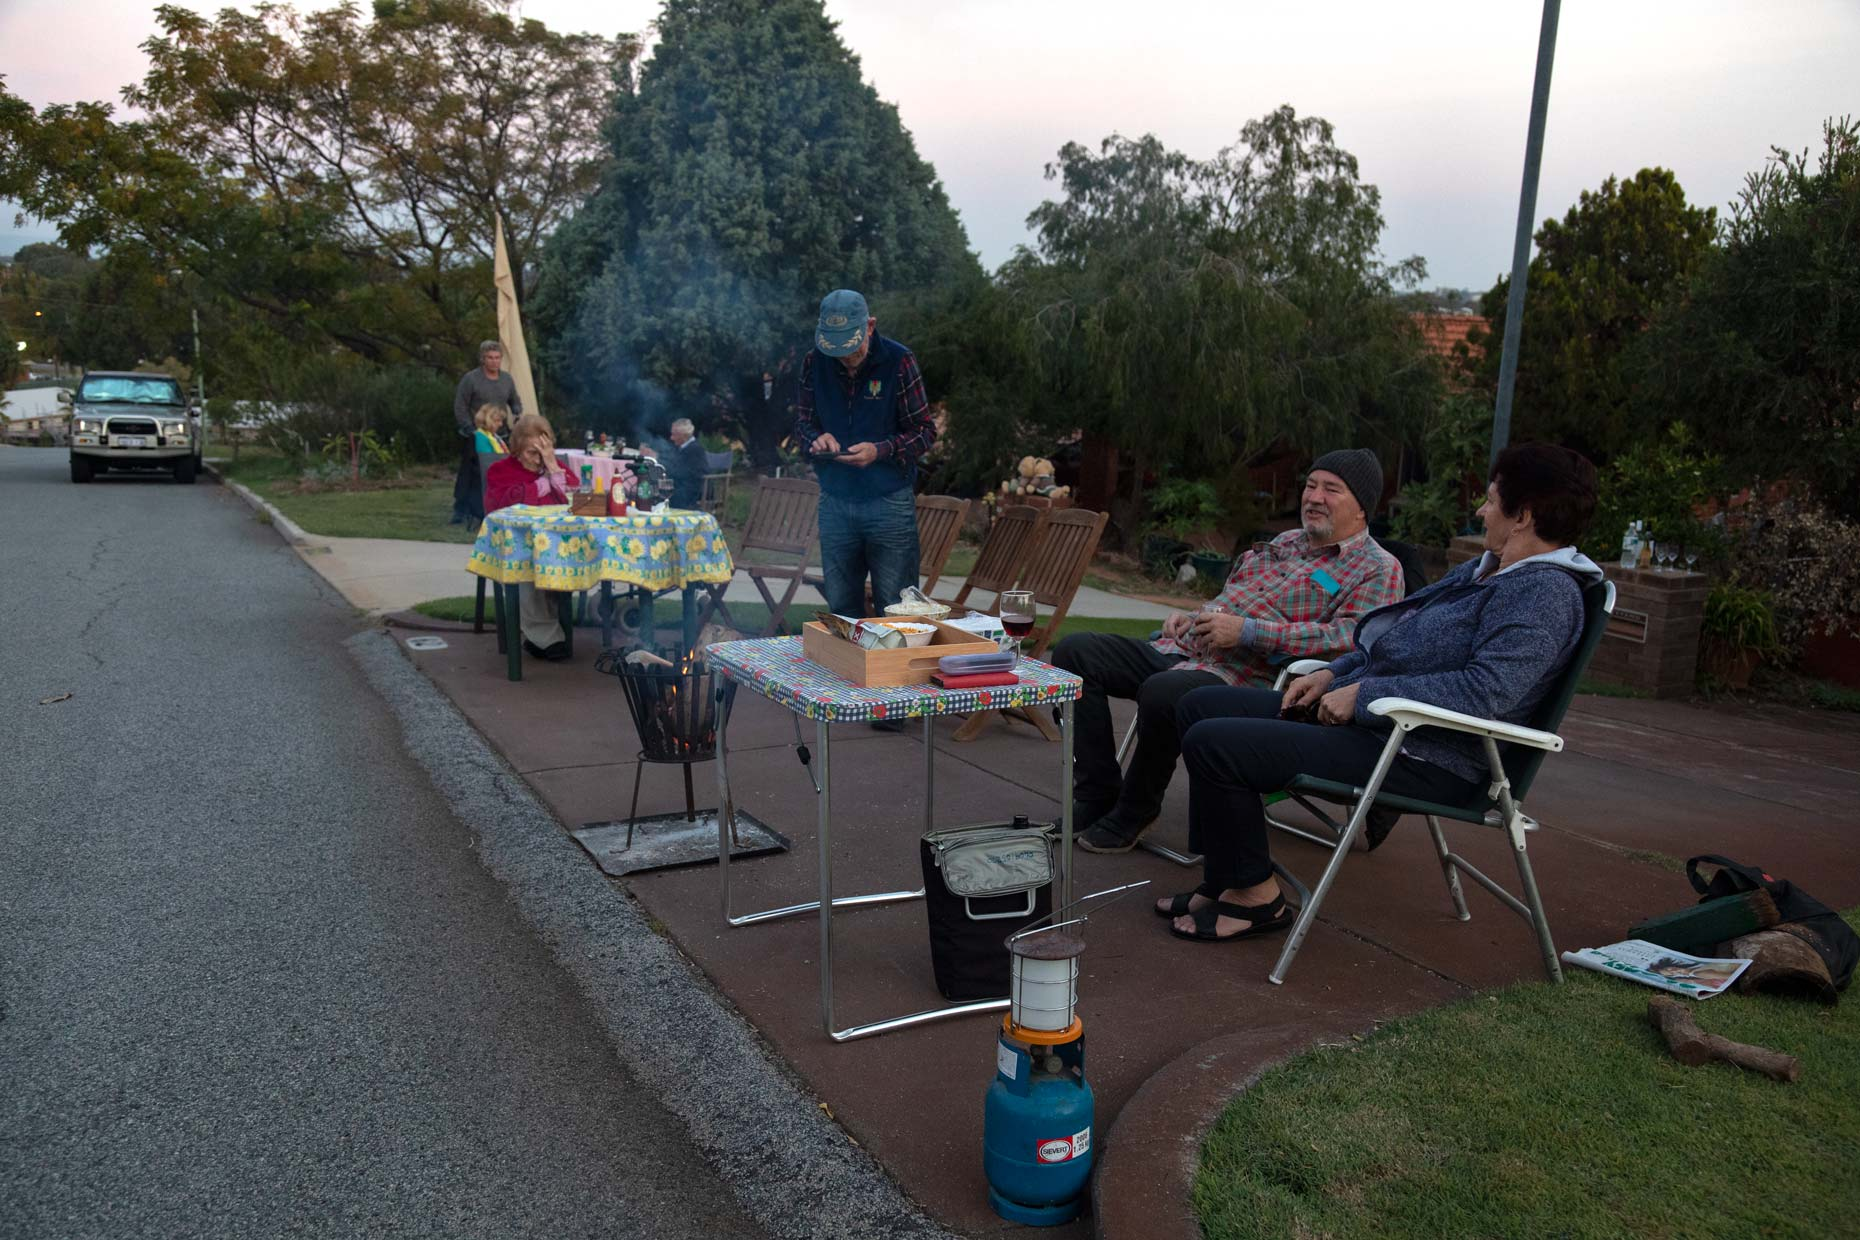 Suburban driveway dinner during COVID-19 lockdown